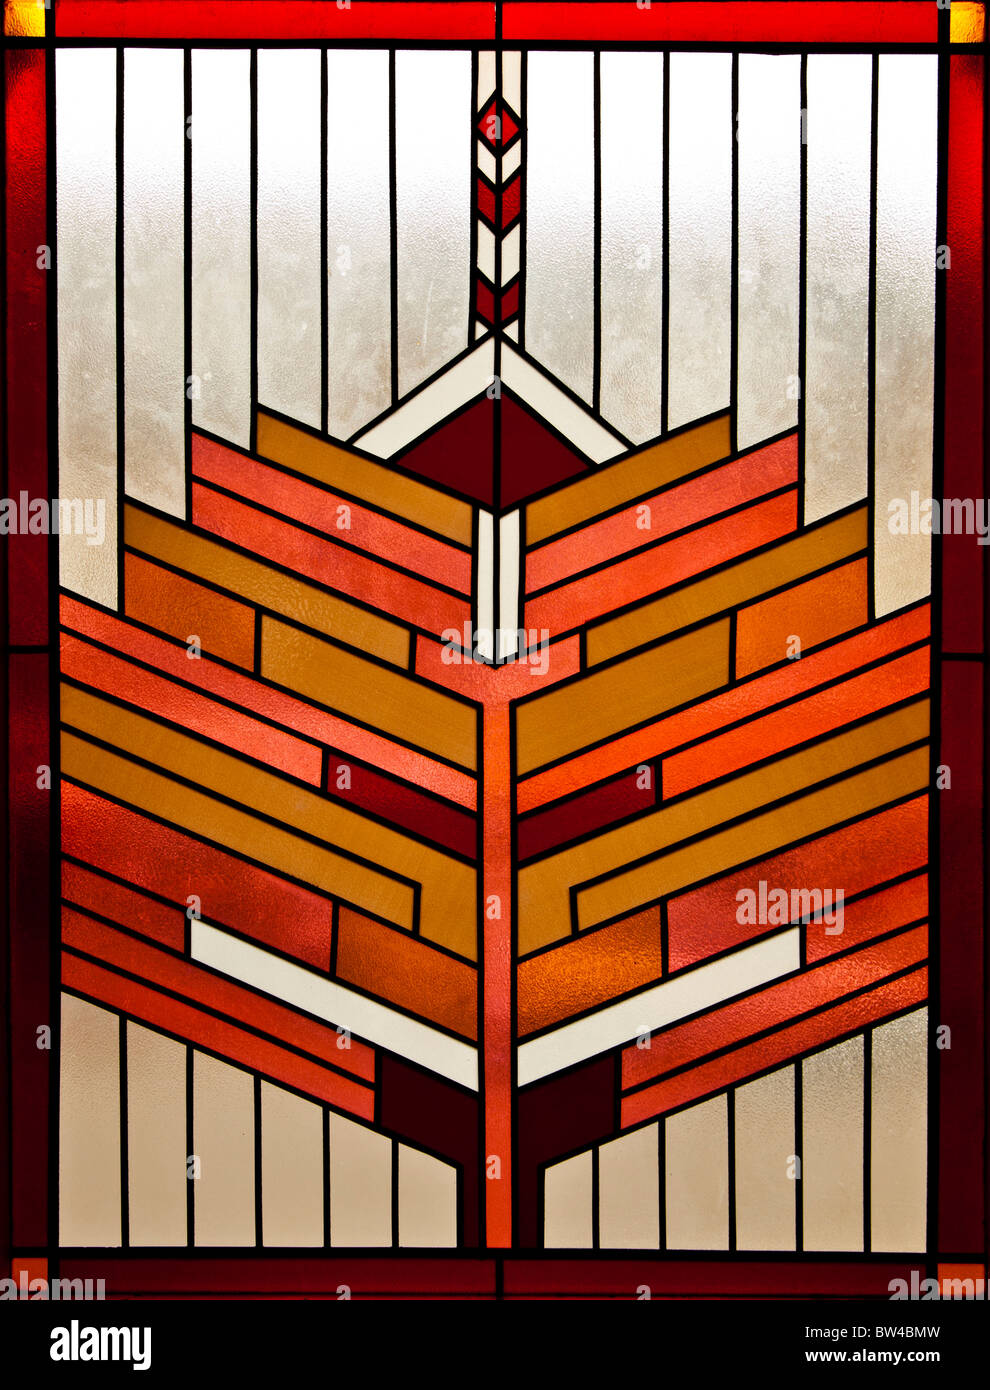 symmetrical stained glass window retro art deco design. Black Bedroom Furniture Sets. Home Design Ideas